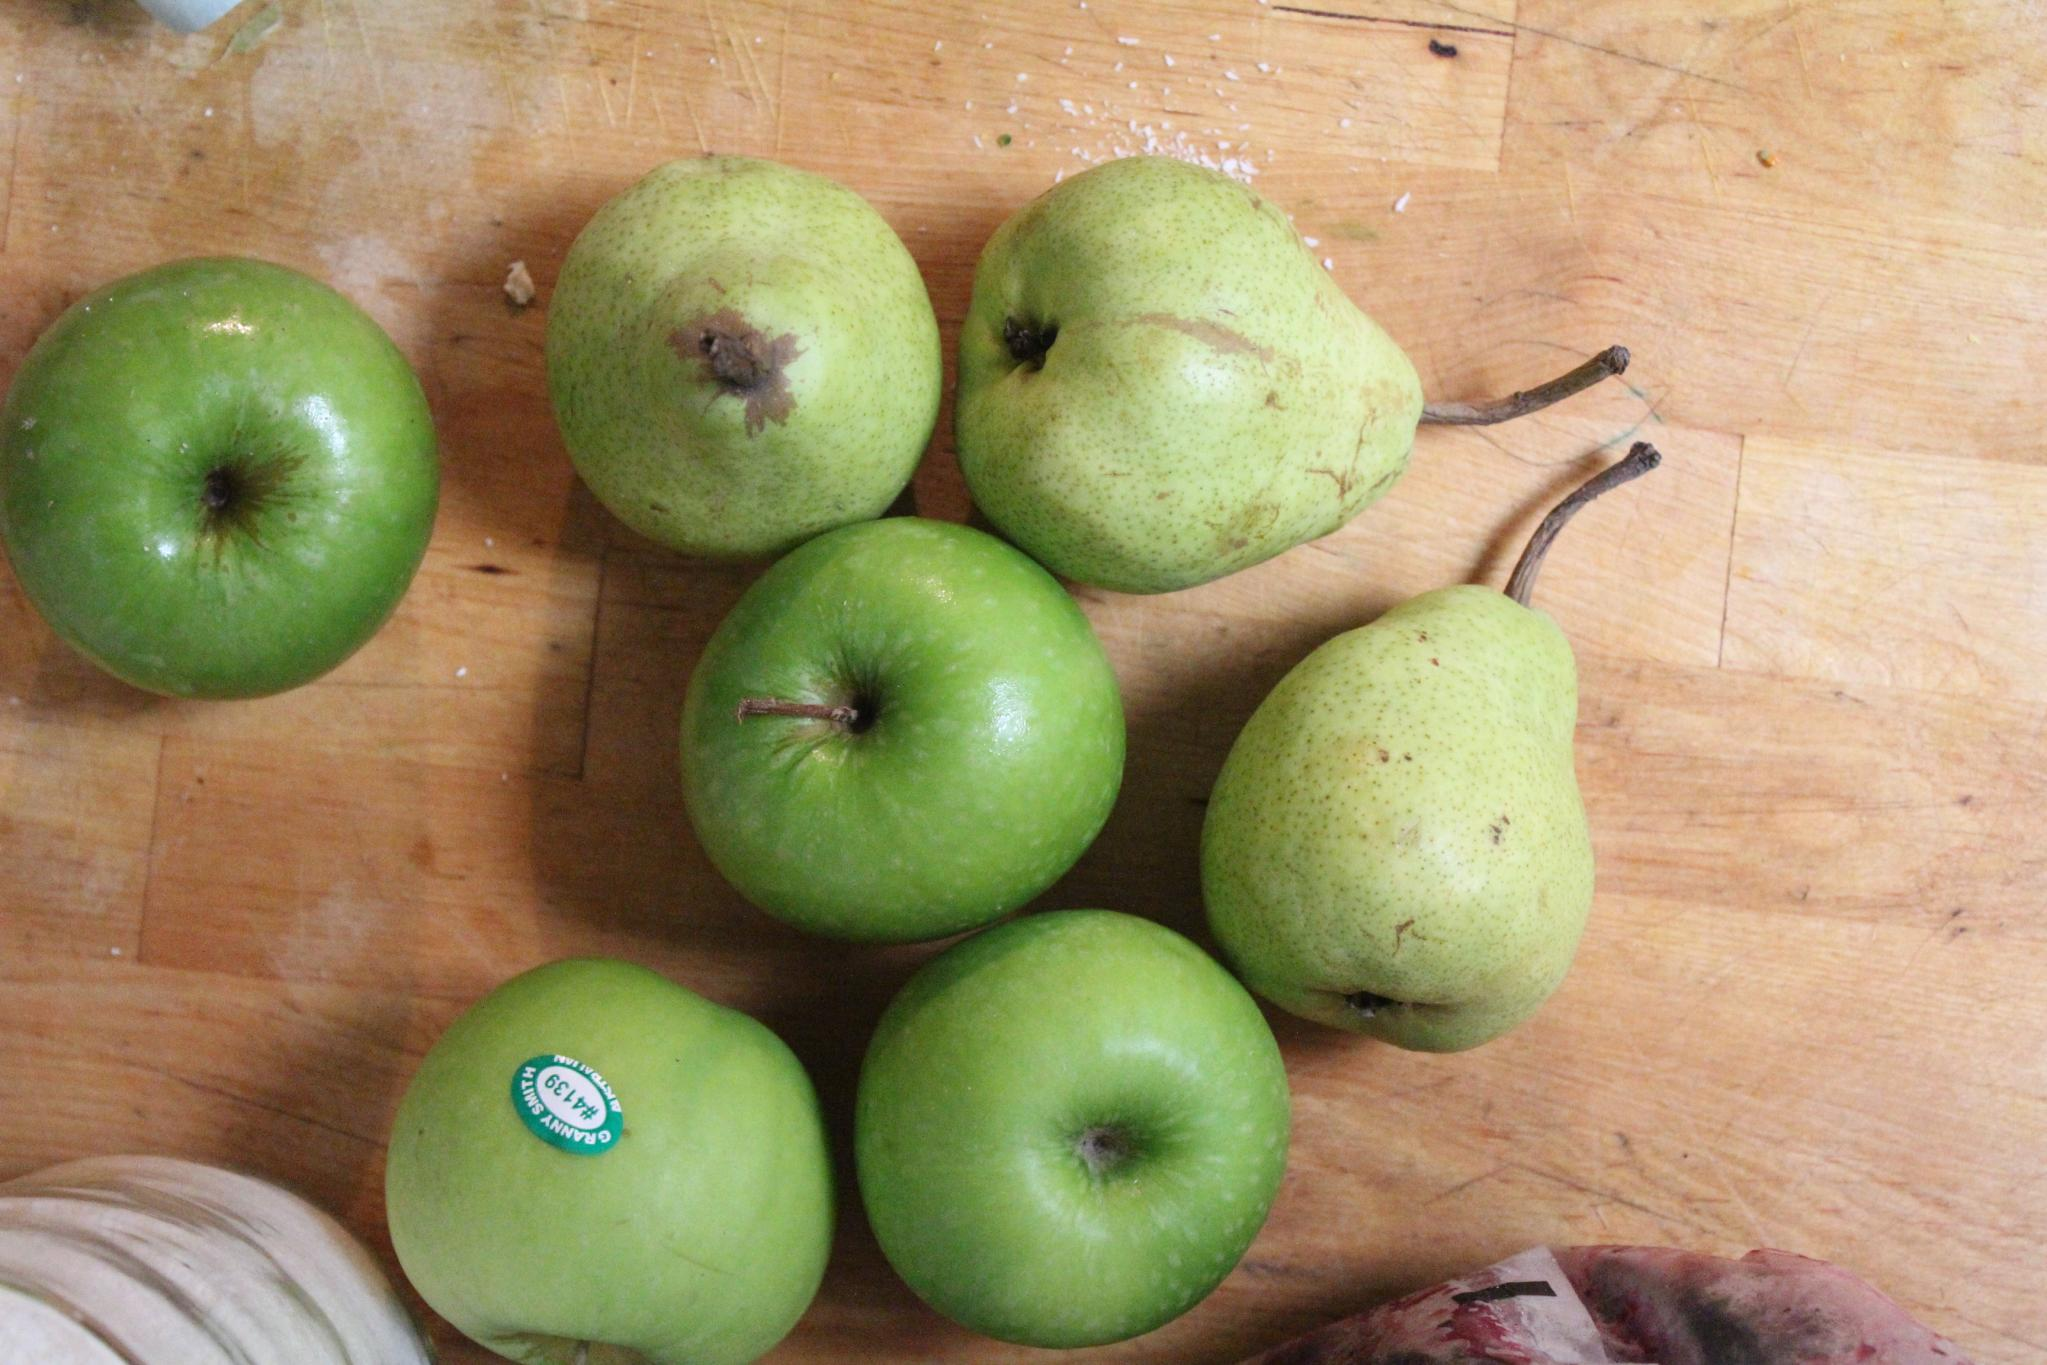 Apples and Pear with PLU